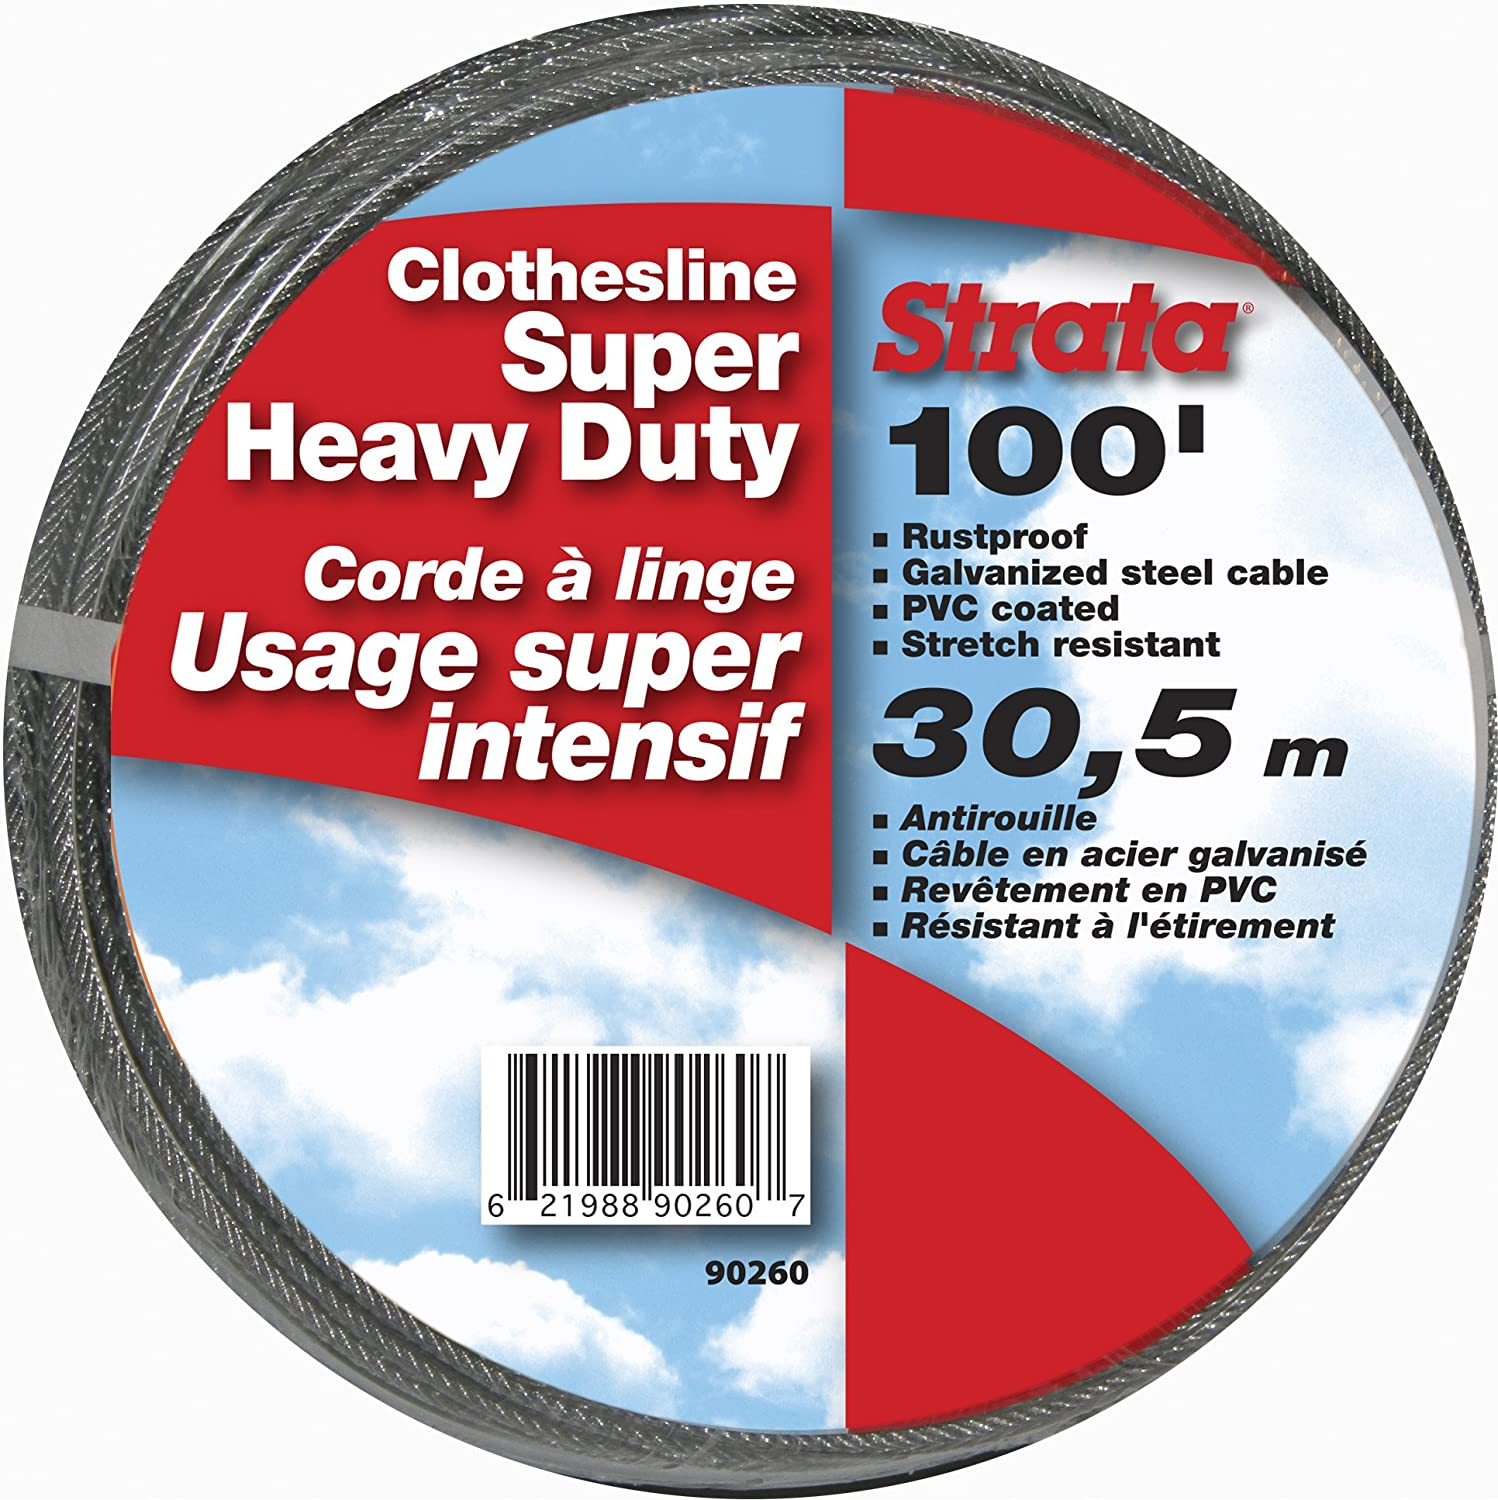 Strata 100' Silver Clothesline - Super Heavy Duty Galvanized Steel Cable, PVC Coasting